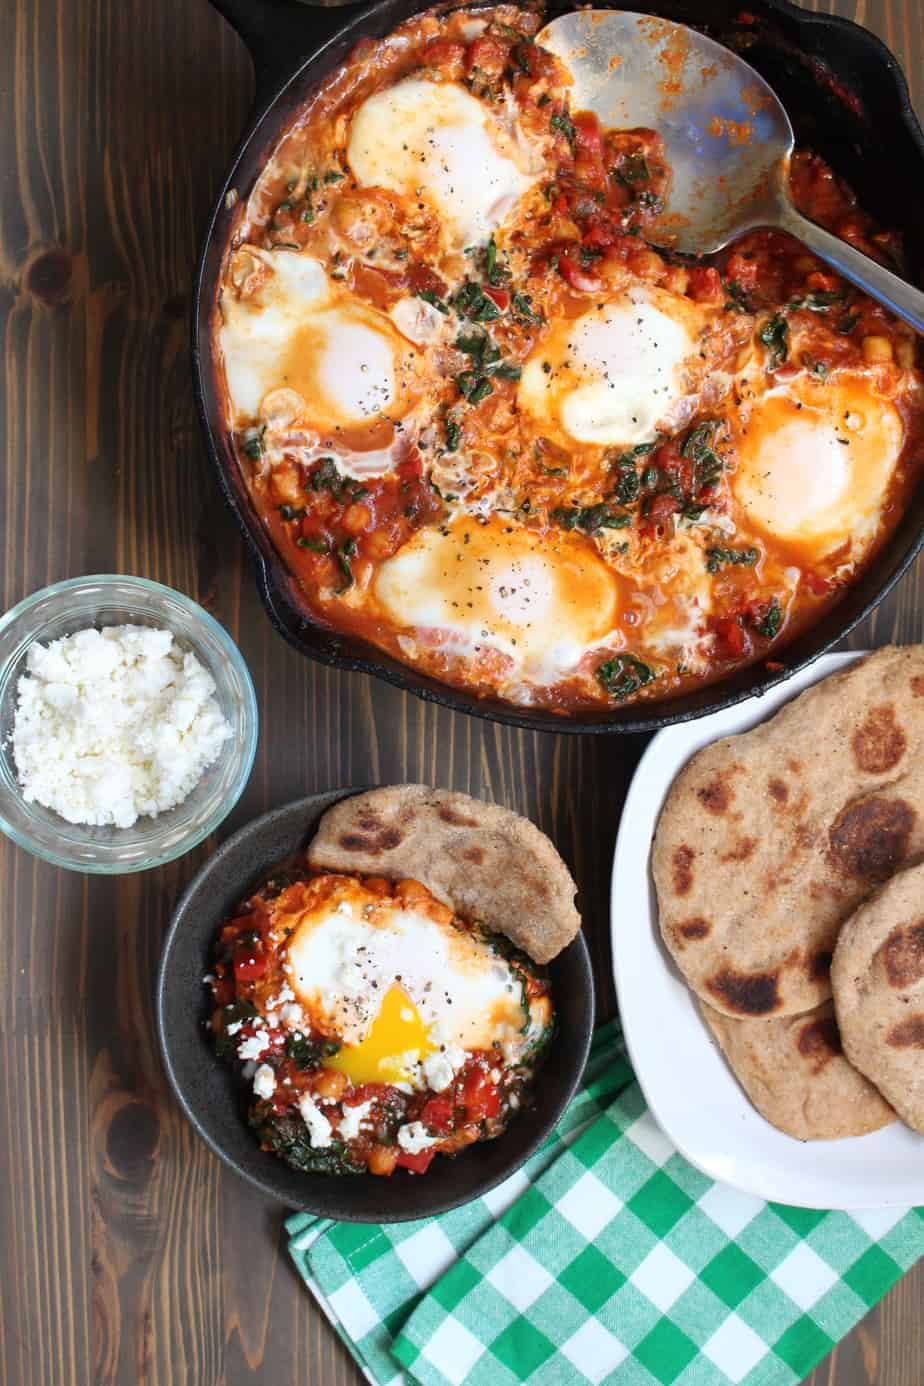 Shakshuka Tomato Skillet with Chickpeas, Kale, and Eggs | Frugal Nutrition